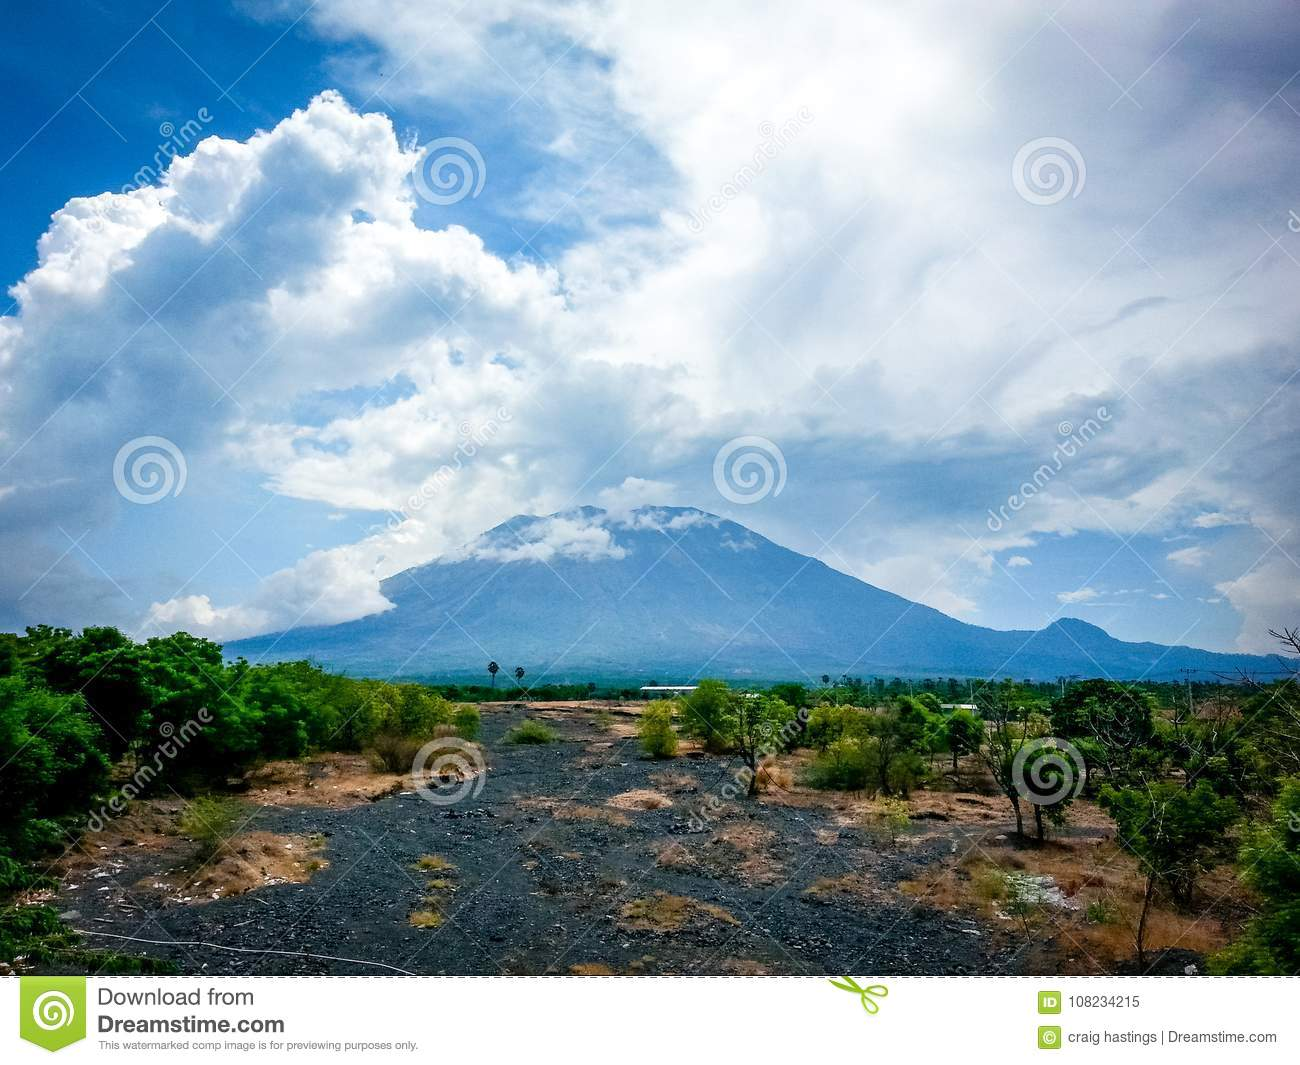 North Bali Volcano Landscape Indonesia Stock Image Image Of Highly